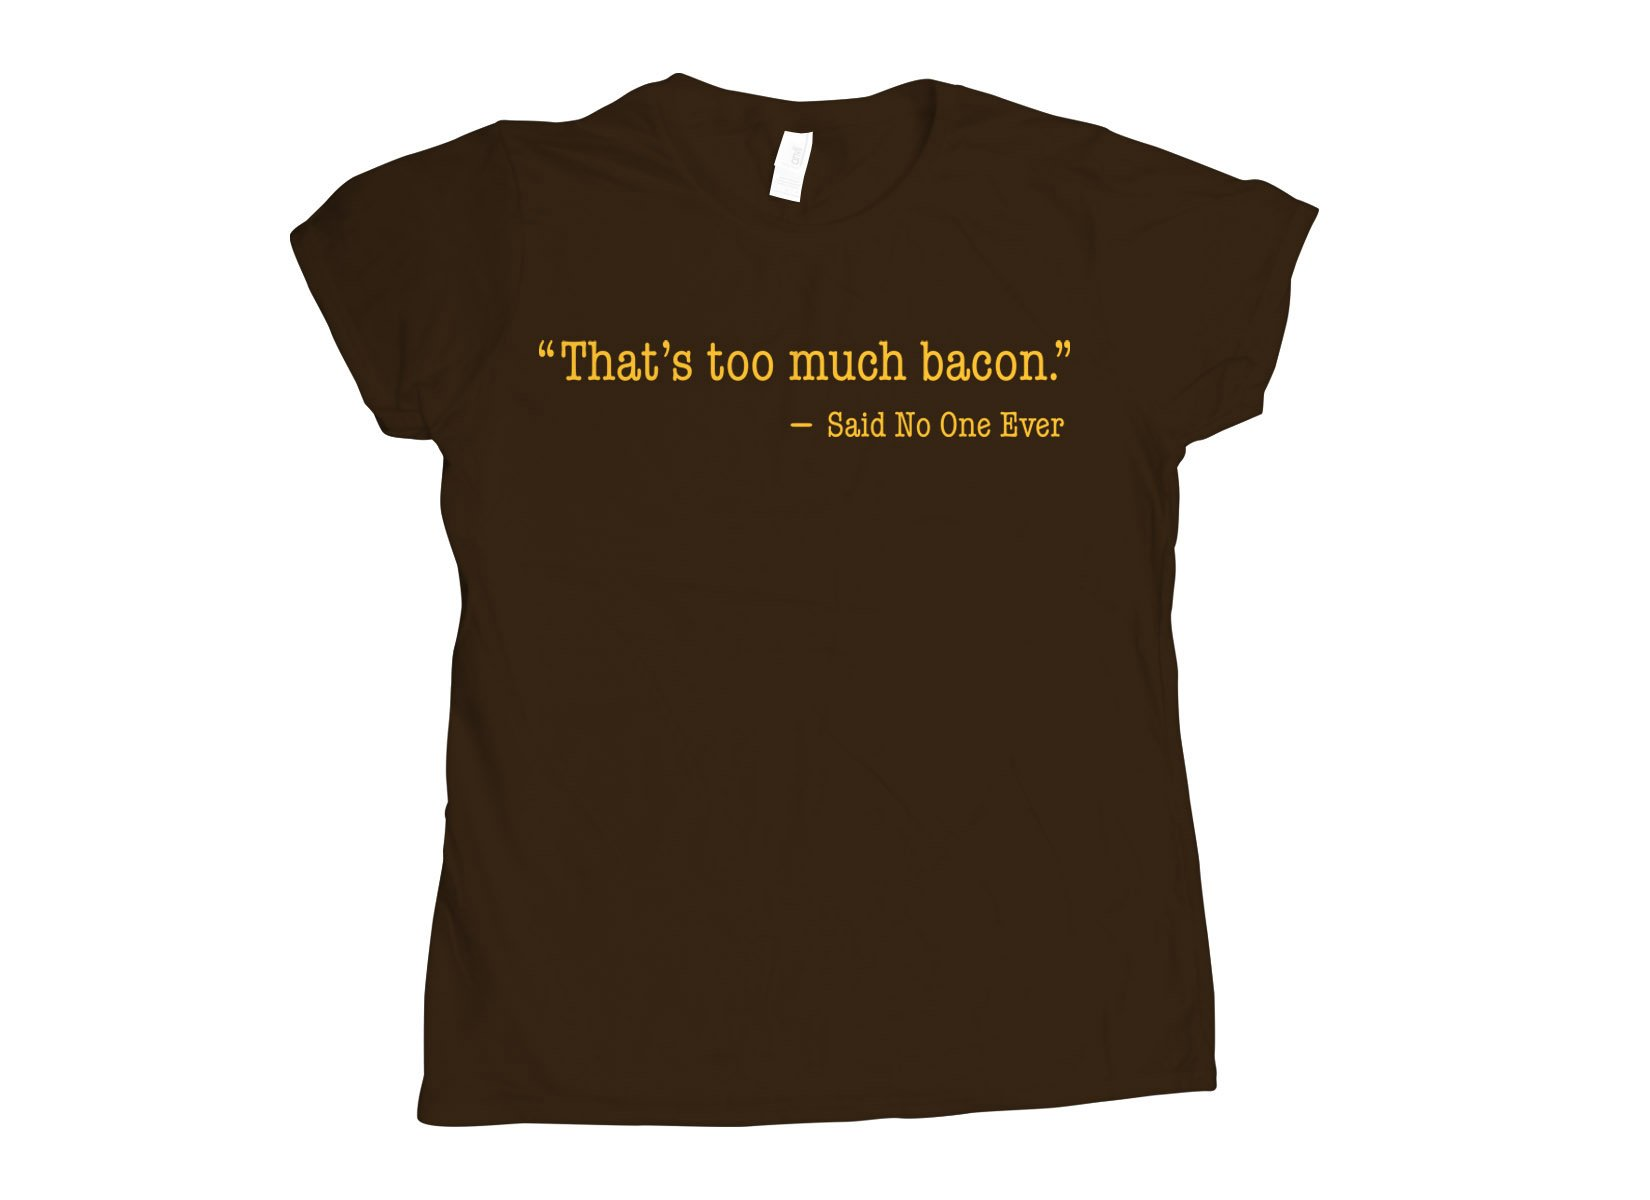 That's Too Much Bacon, Said No One Ever on Womens T-Shirt